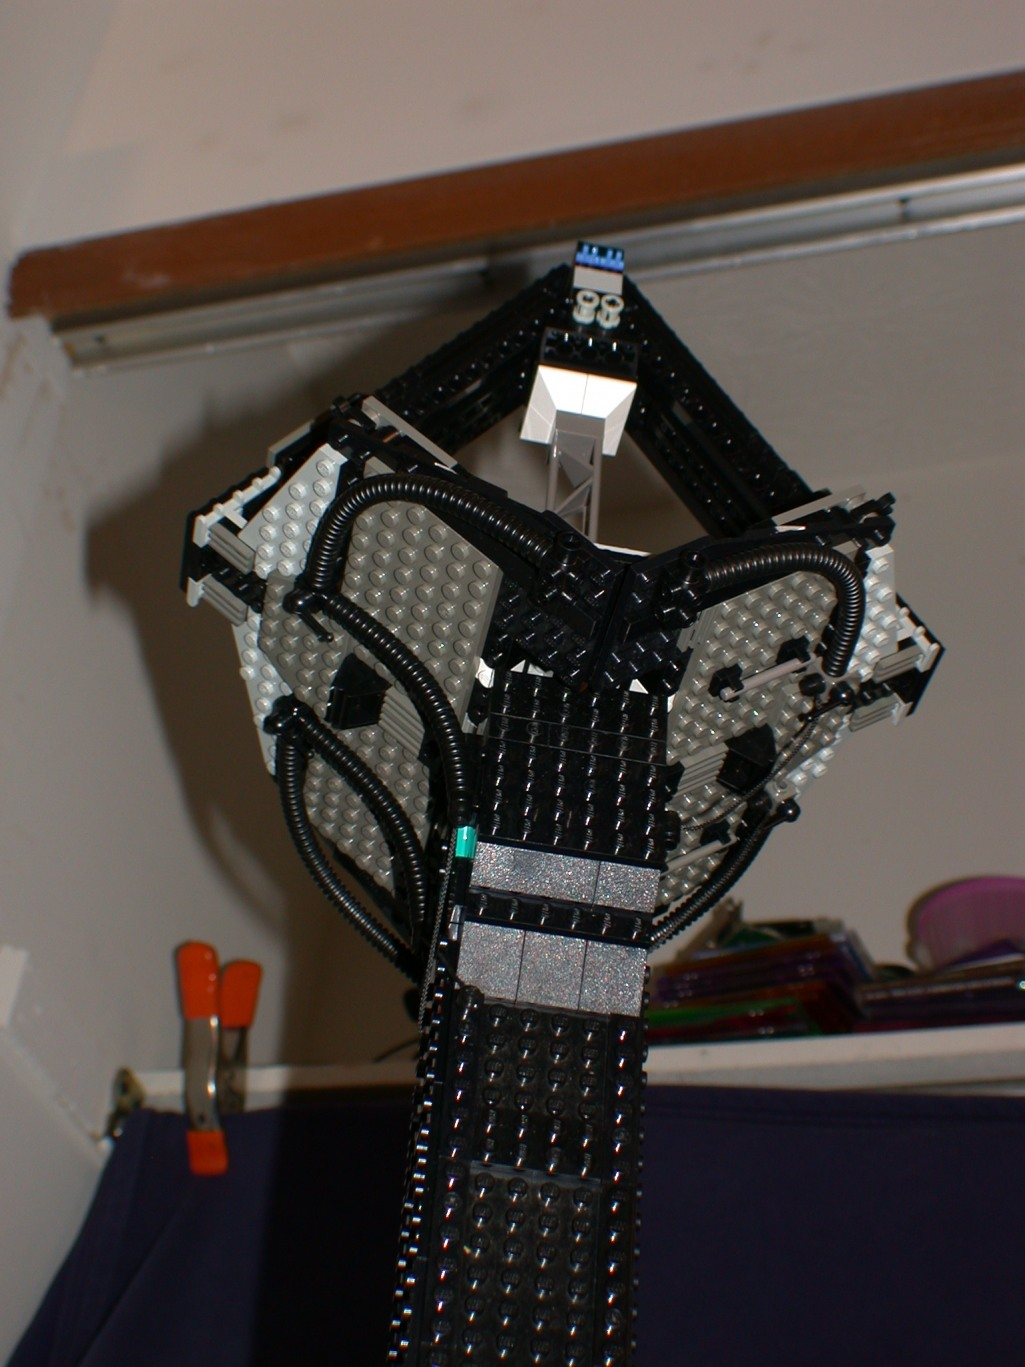 Dscn0678 from LEGO Space Mother Ship GallaghersArt_dscn0678.jpg